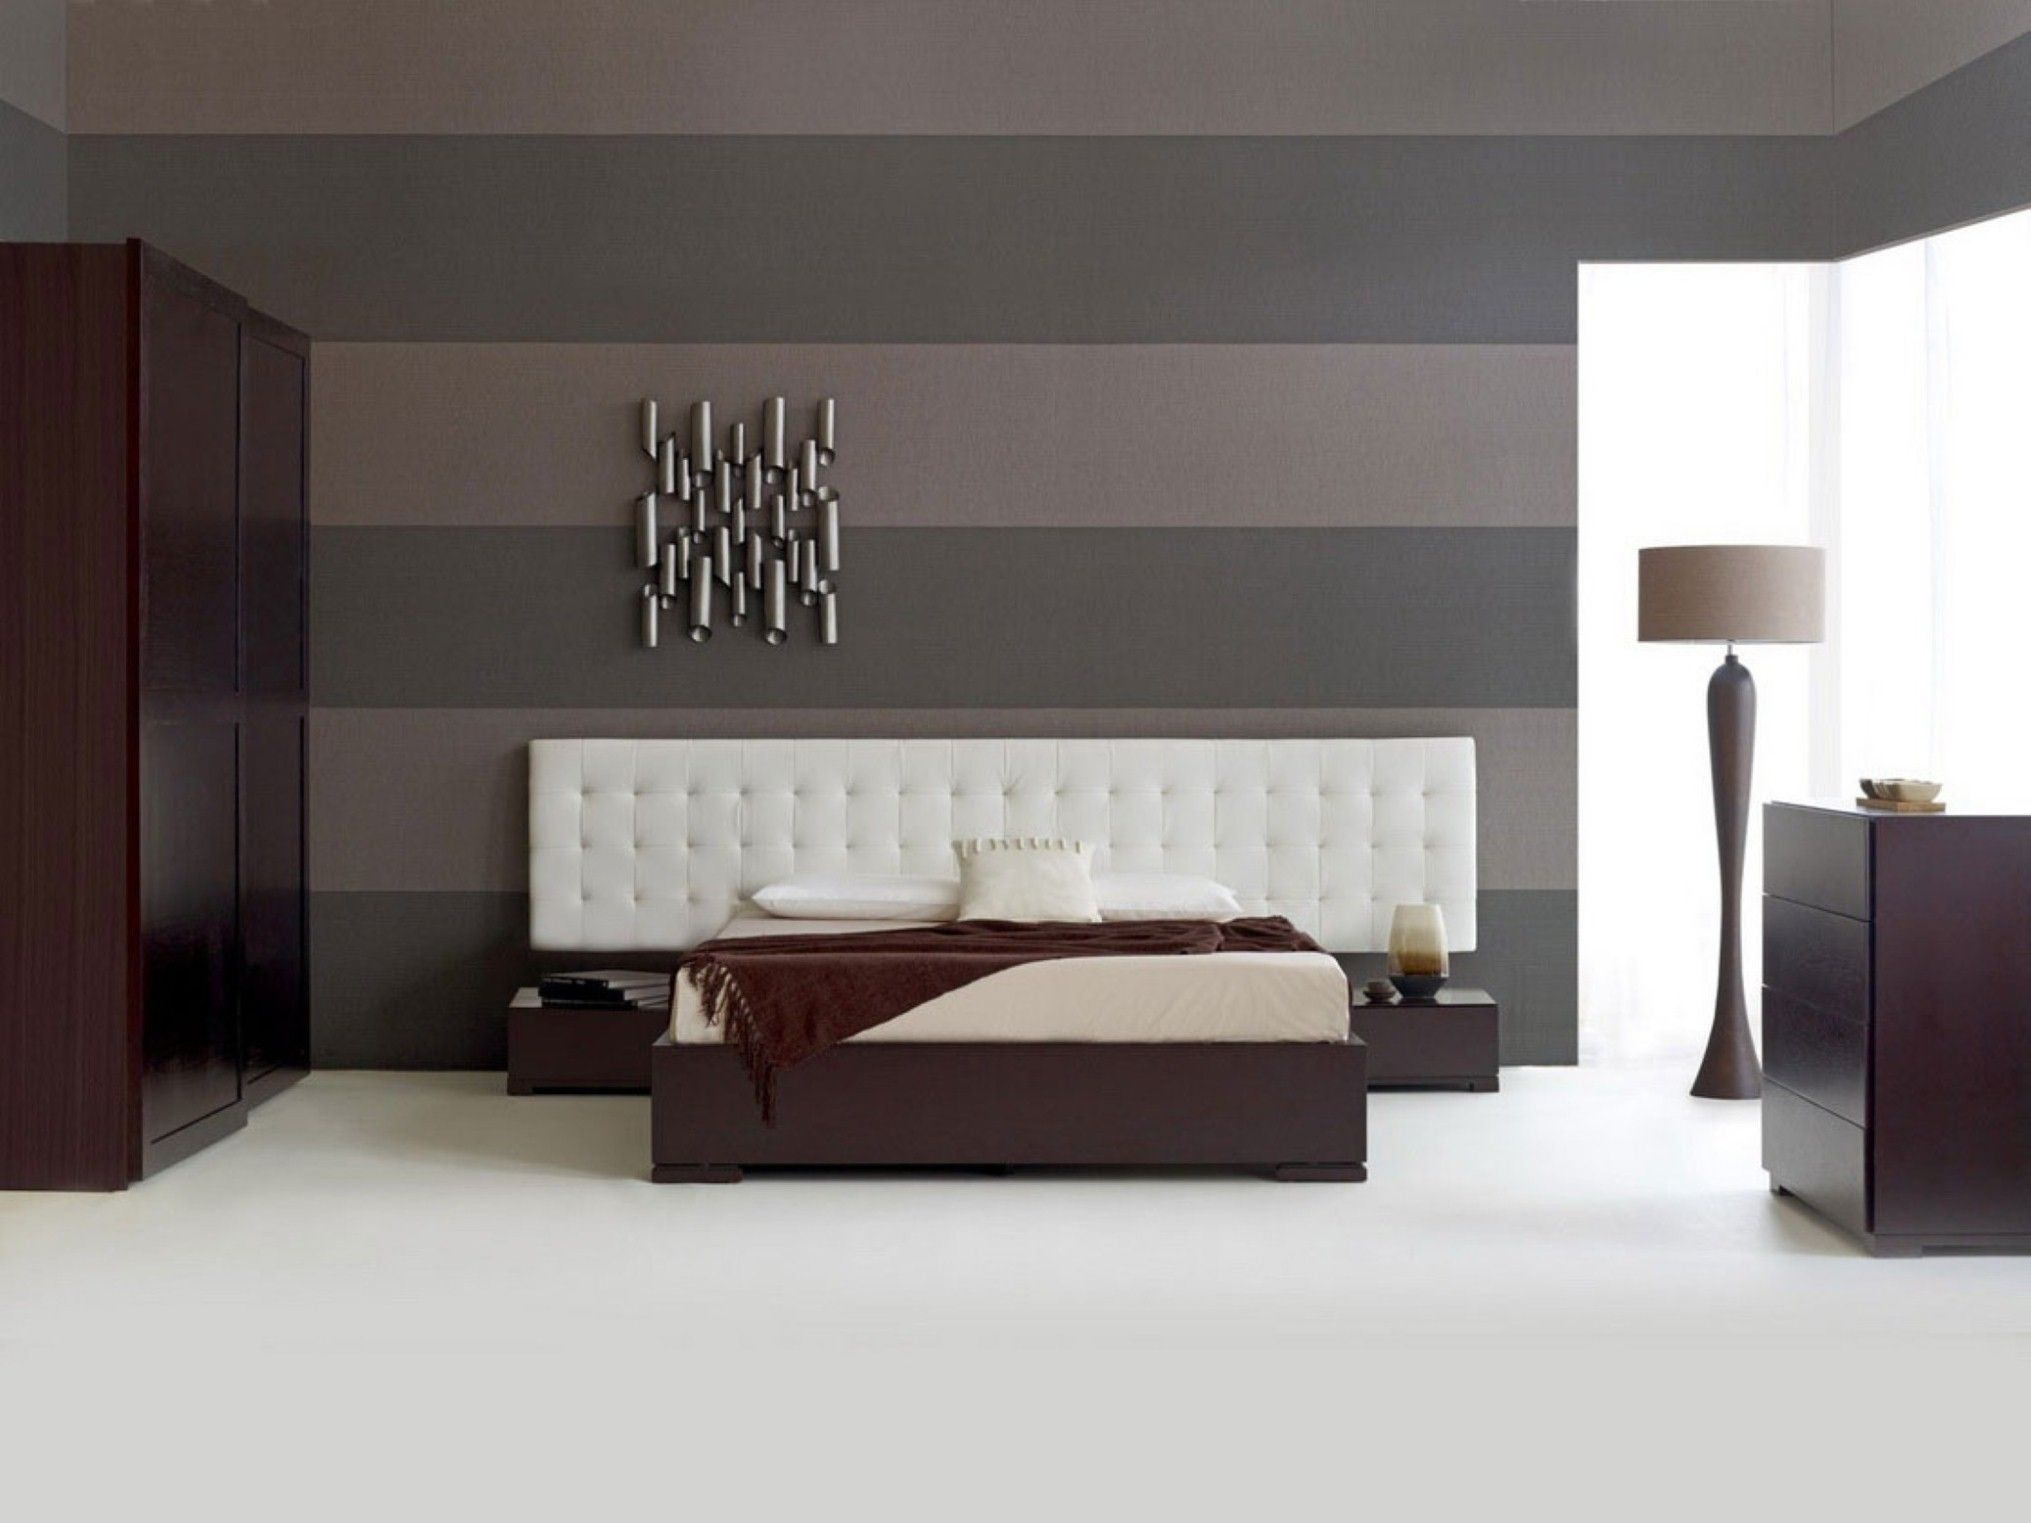 Ultra modern bedroom interiors - Bedroom Ultra Modern White Tufted Headboards Varnished Oak Hardwood Flooring With Contemporary Bathroom And Black